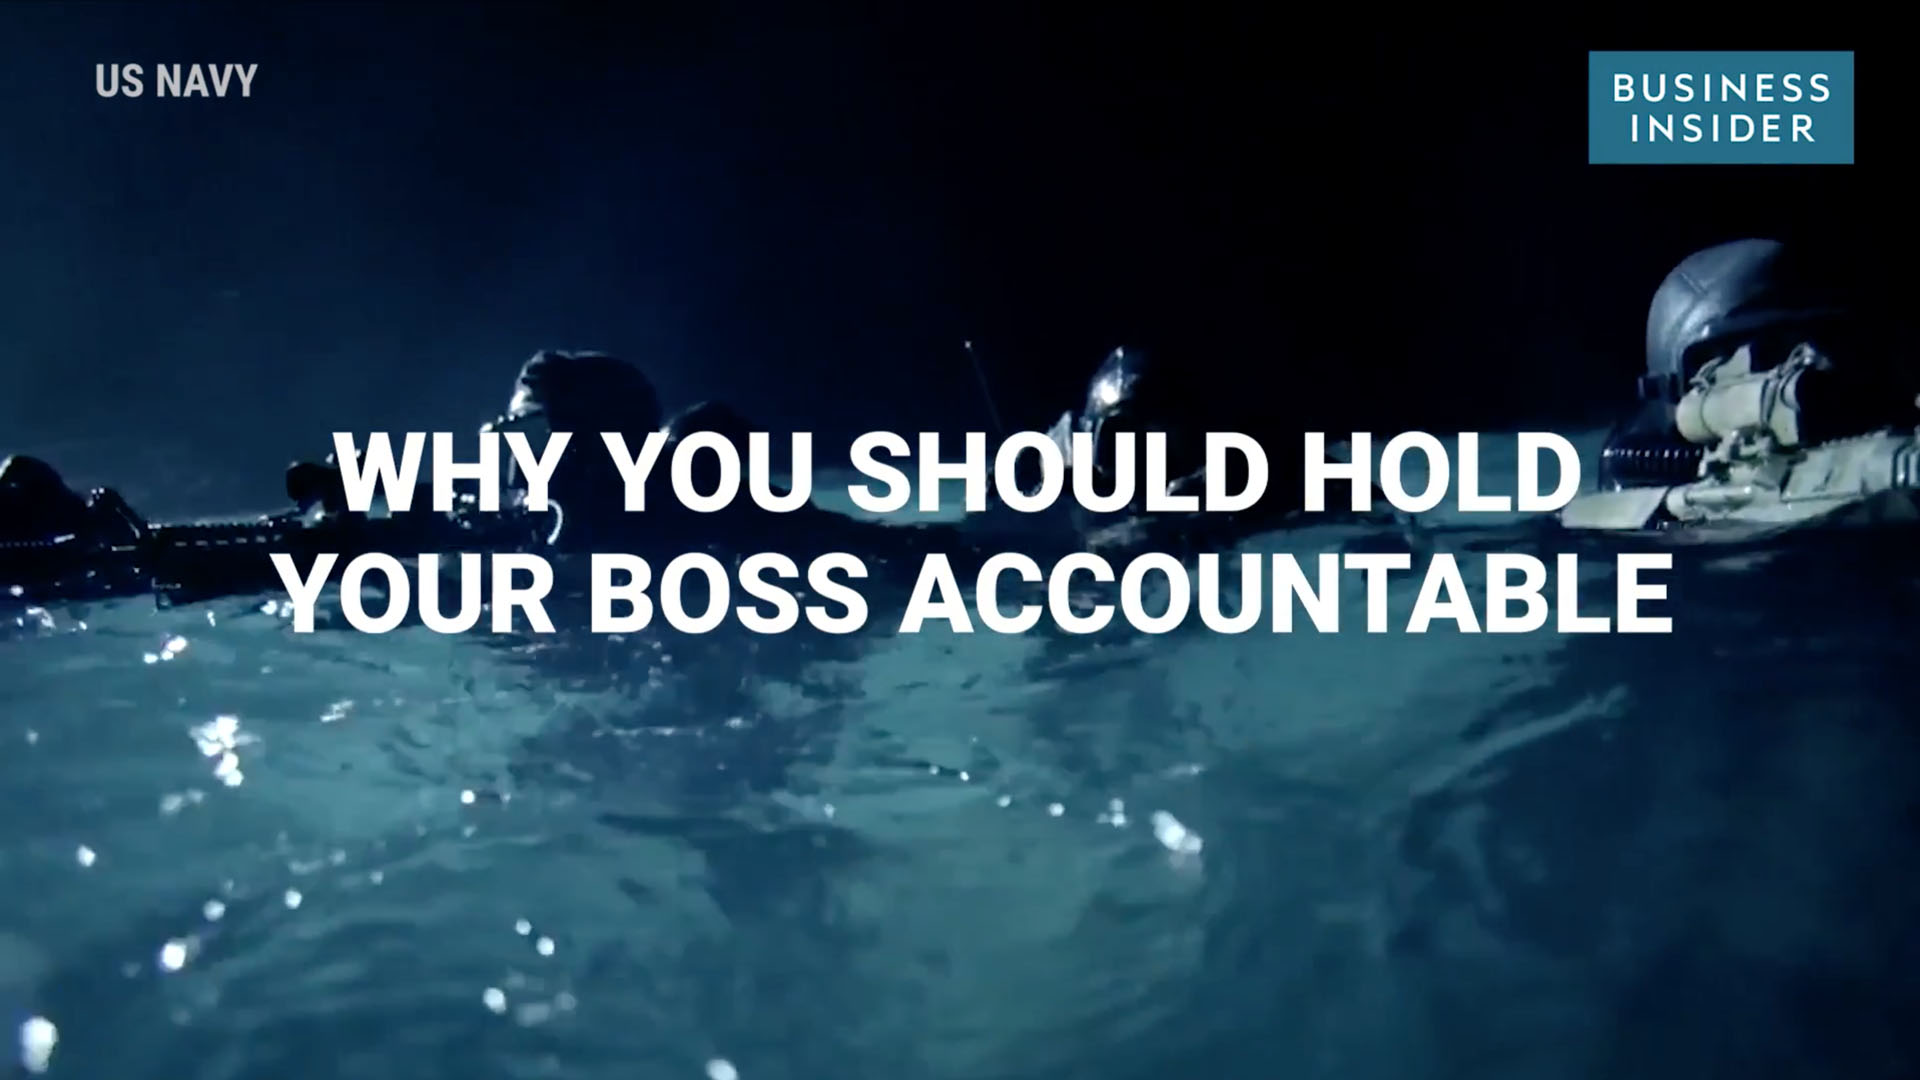 Business Insider - Why You Hold Your Boss Accountable, According to a US Navy SEAL